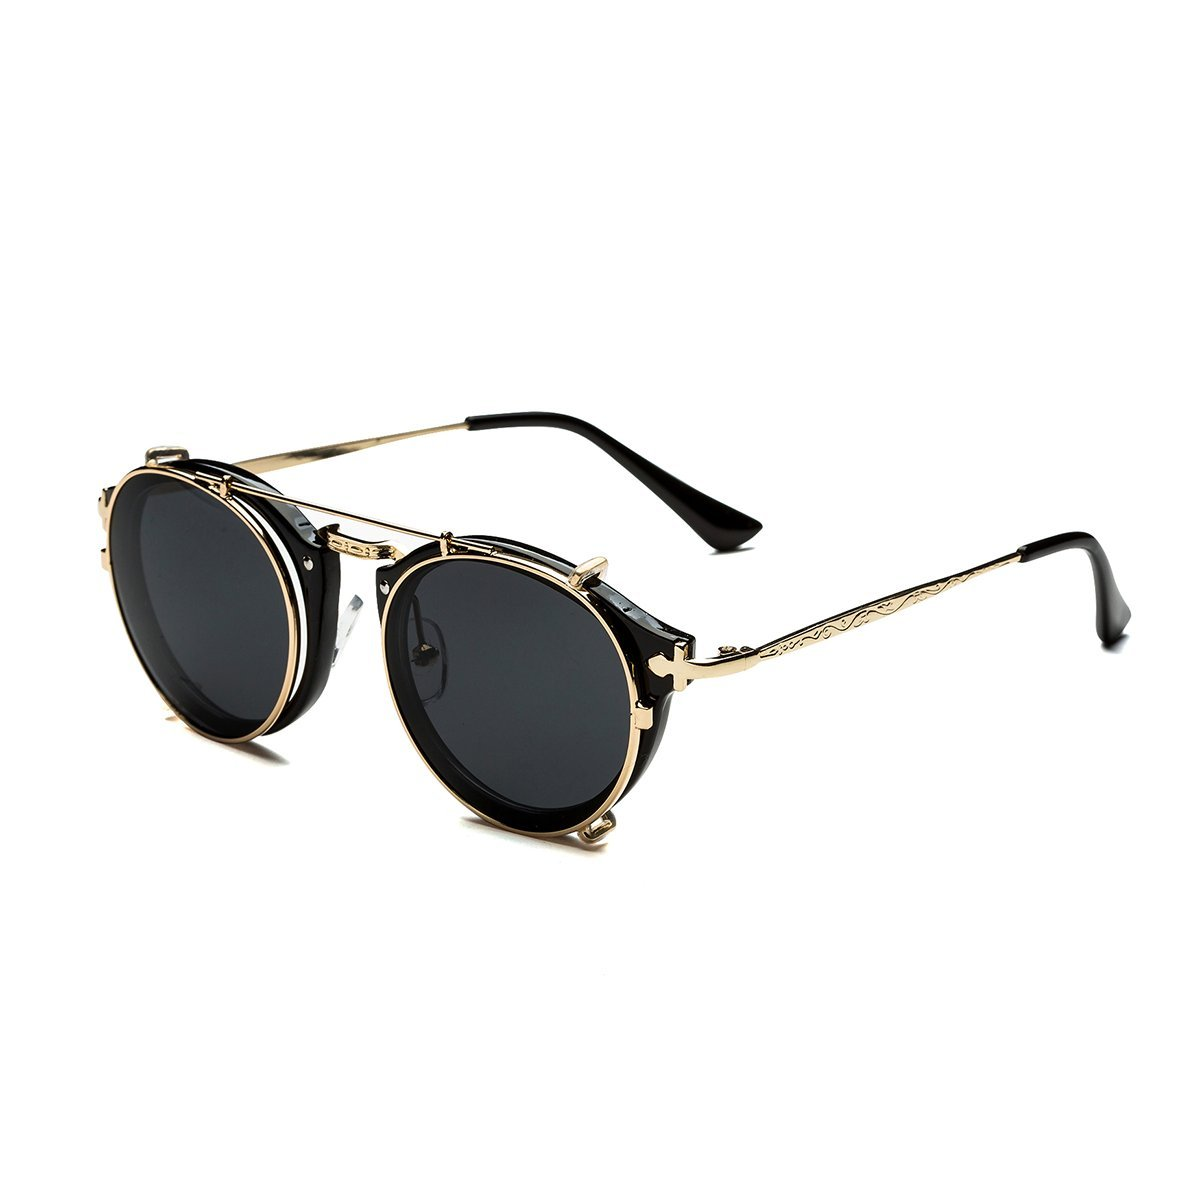 Dollger Double Lens Flip up Clip On Sunglasses Steampunk Style and Round Black Glasses for Men